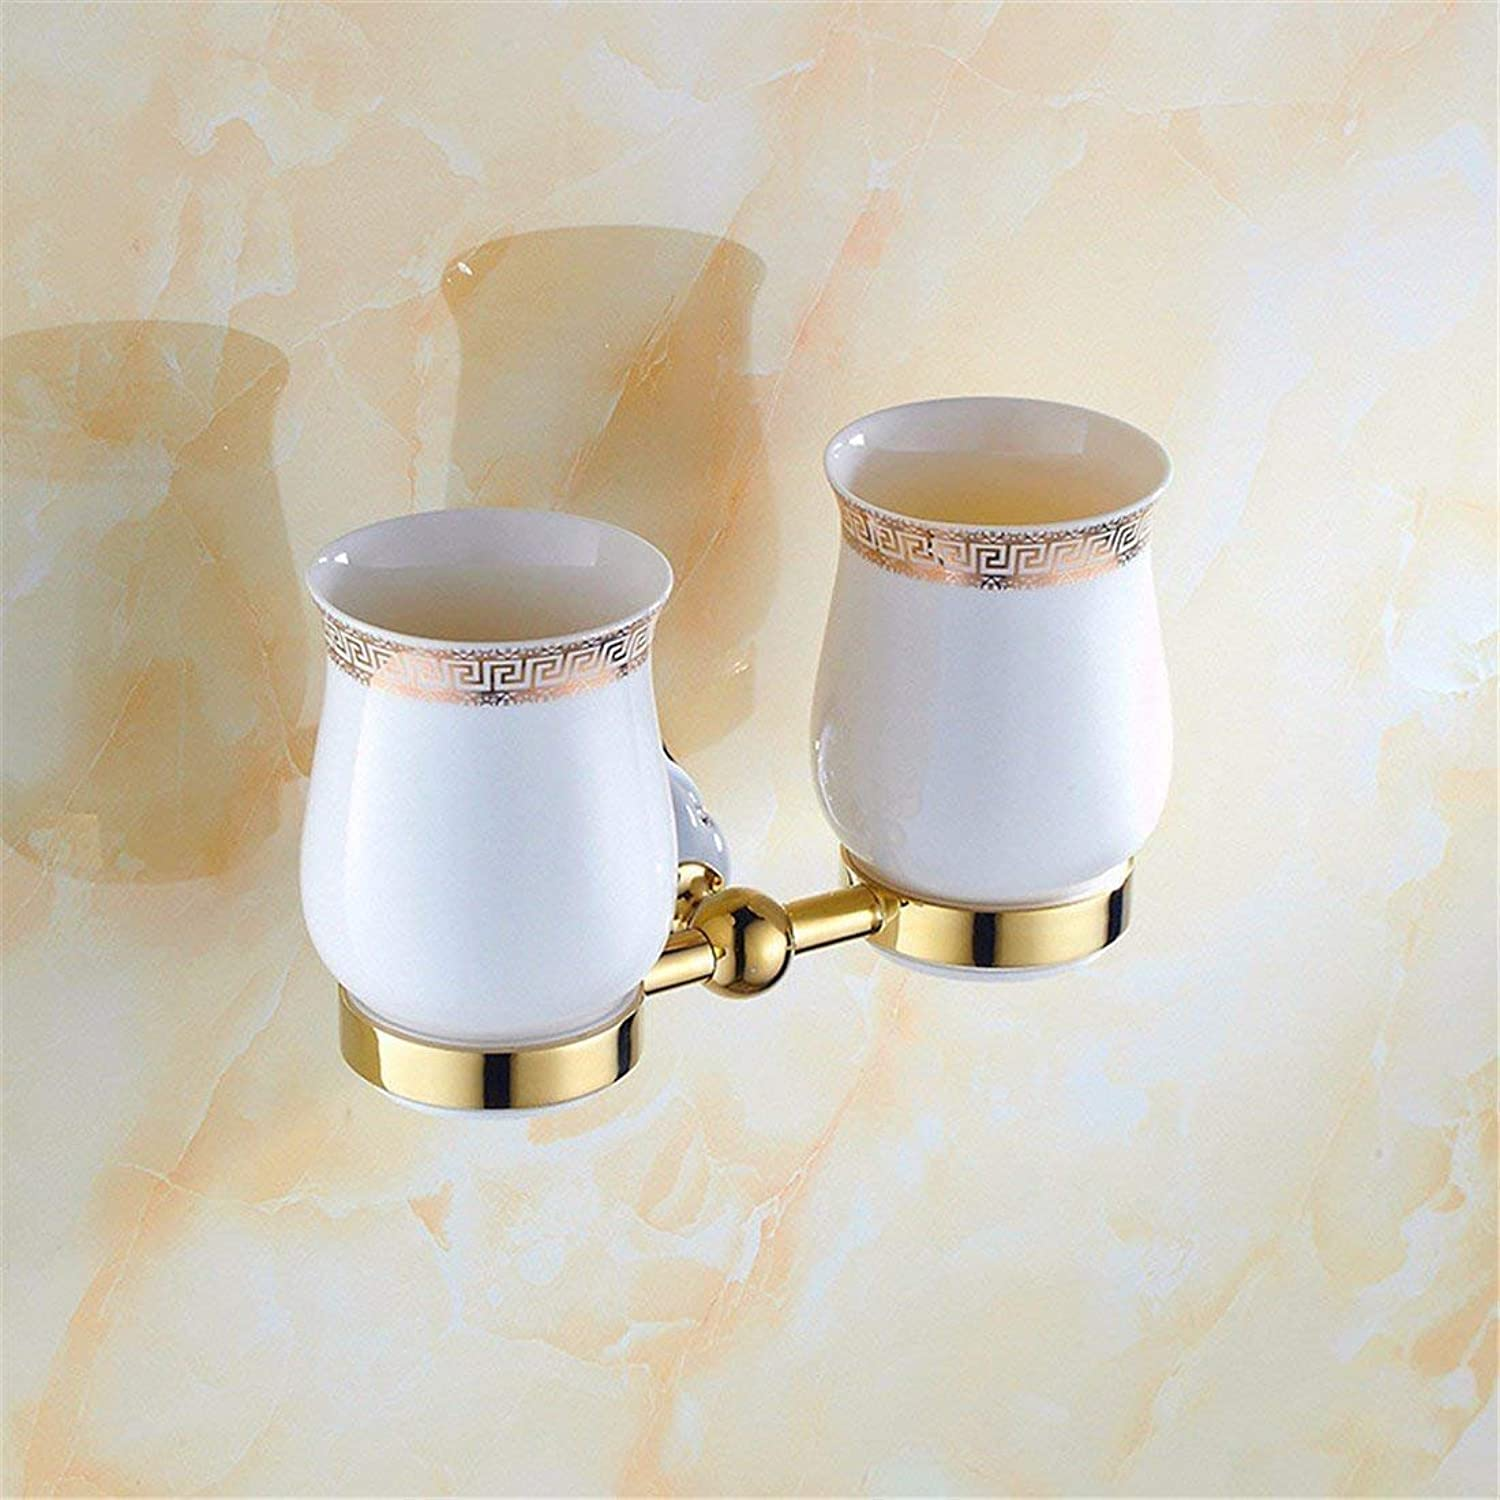 The Diamond Set of gold of Christmas The Bathroom Accessories Boxes to soap in The Antiques in Stainless Steel Single Rod and Double,Double Cup